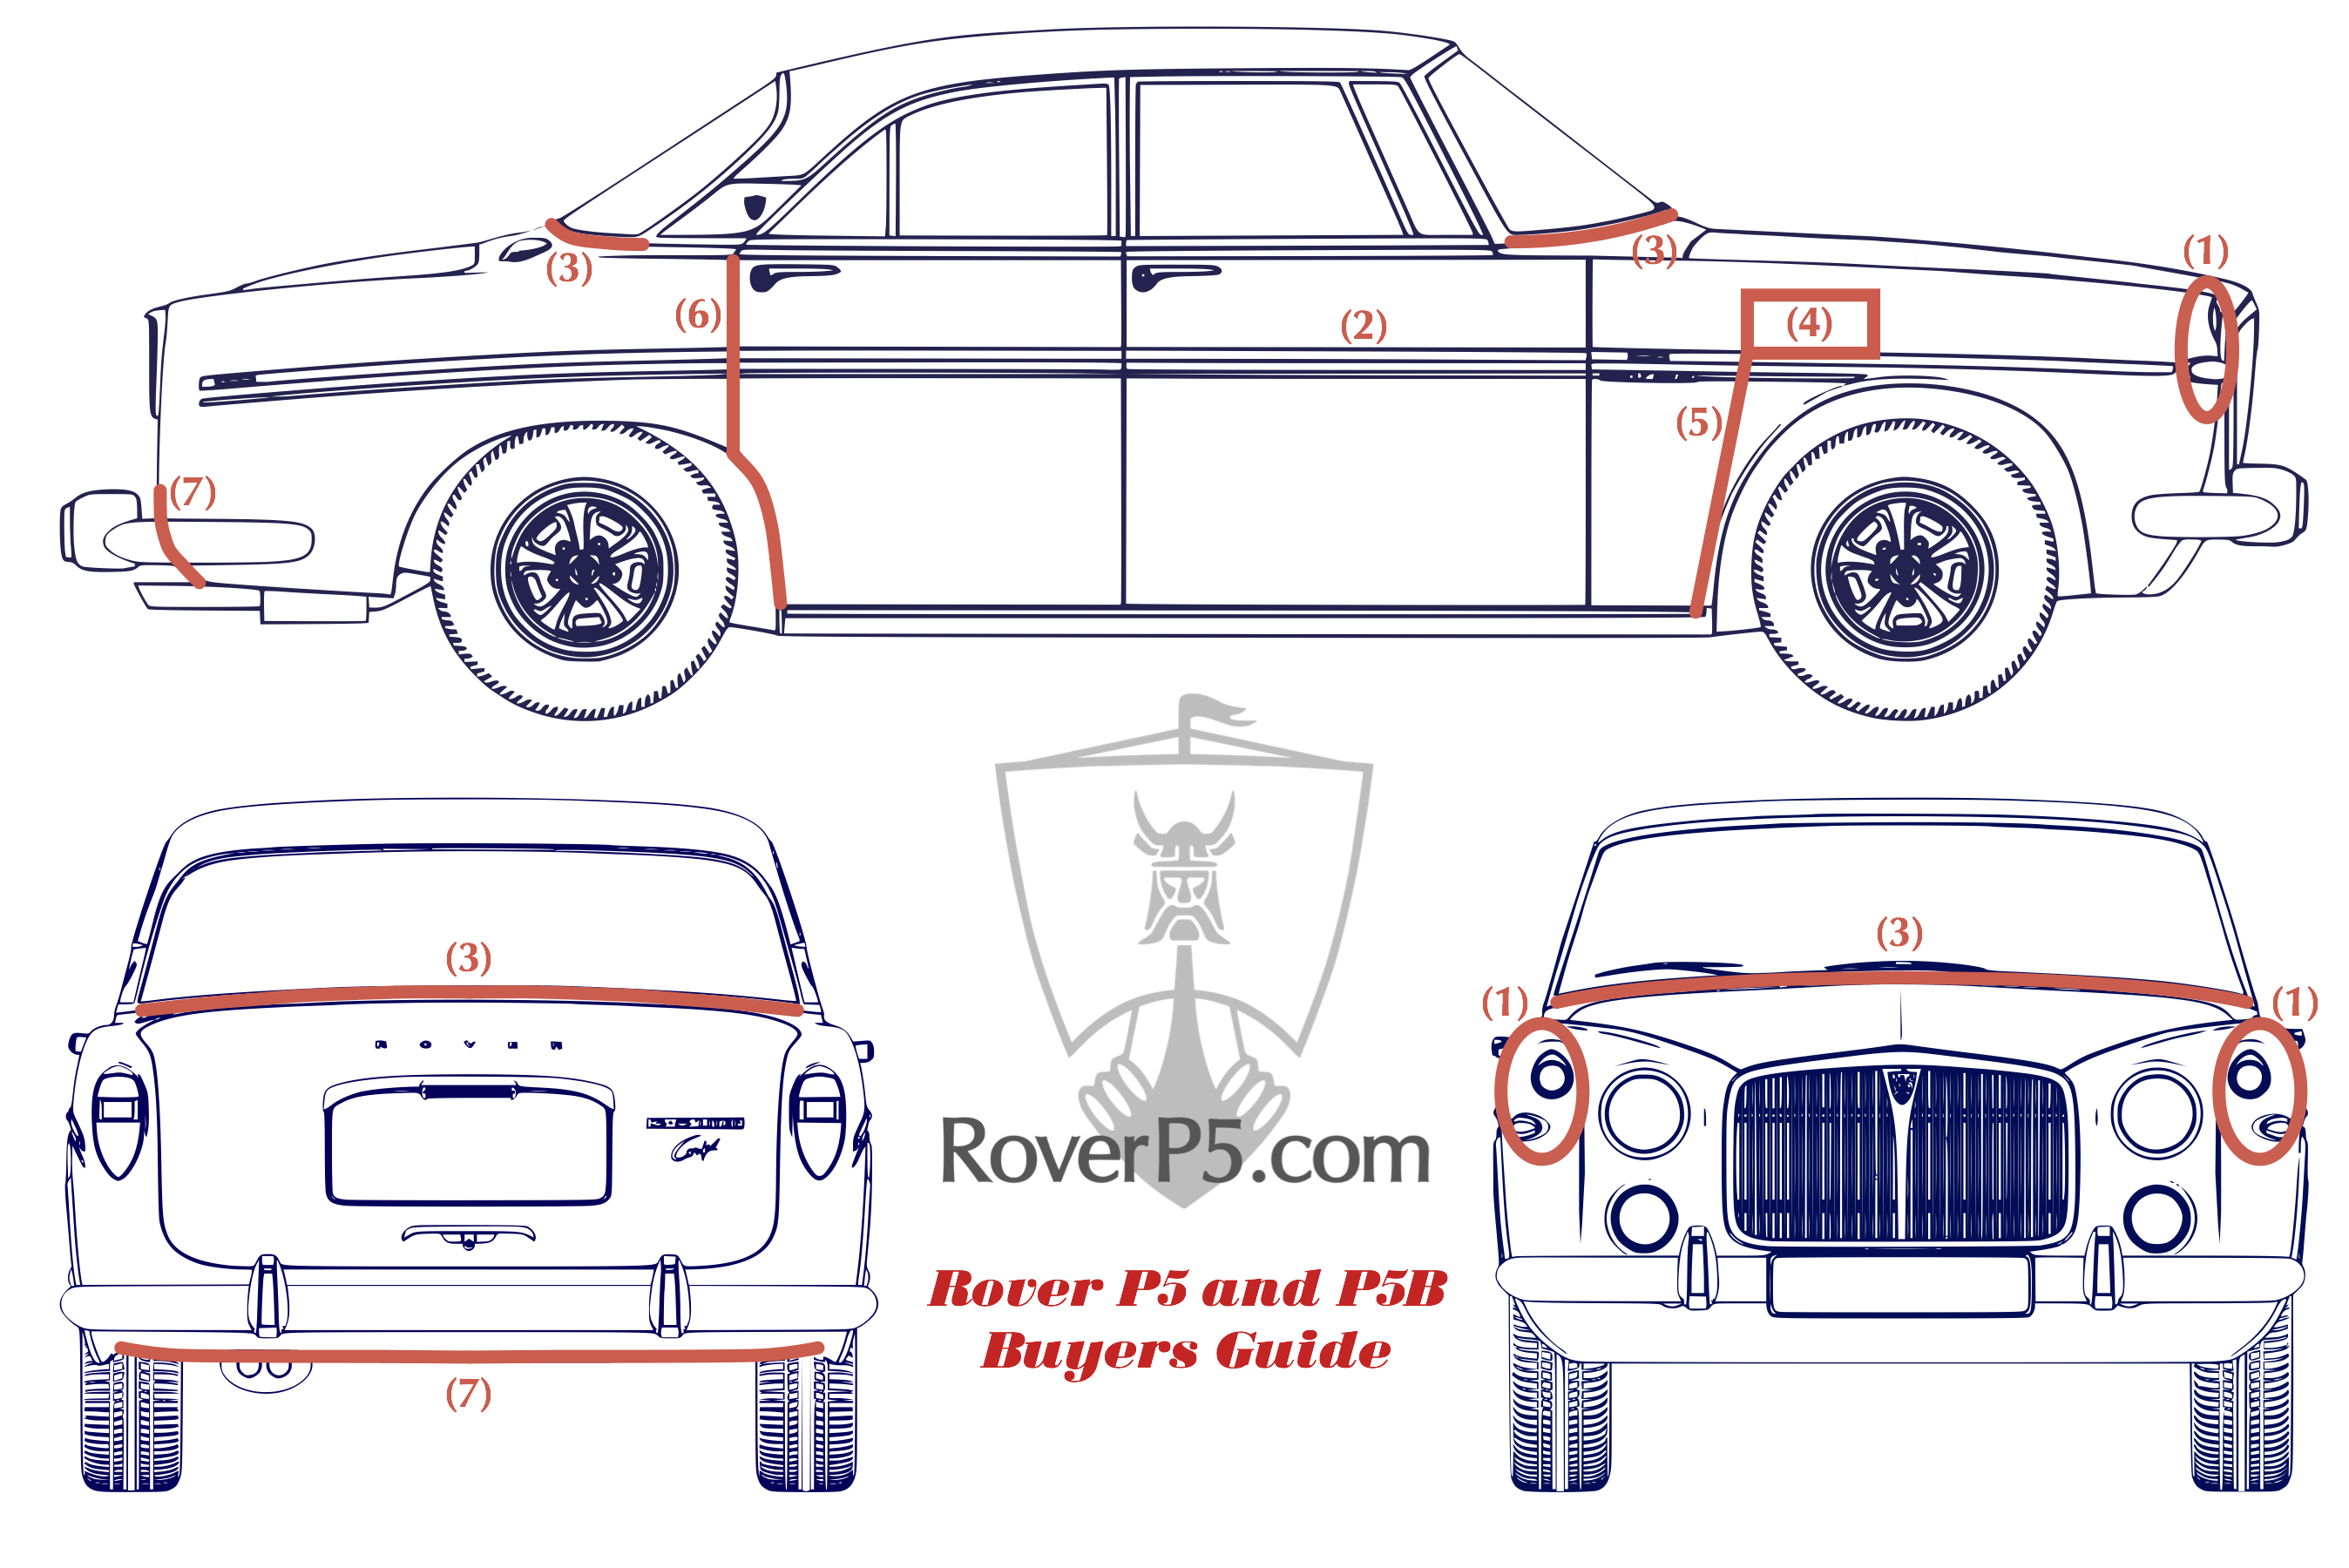 rover p5 (3 litre) and p5b (3 5 litre) buyers guide rover jet 1 engines are relatively simple and parts are available, especially the p5b v8, and other mechanical items are fairly readily available